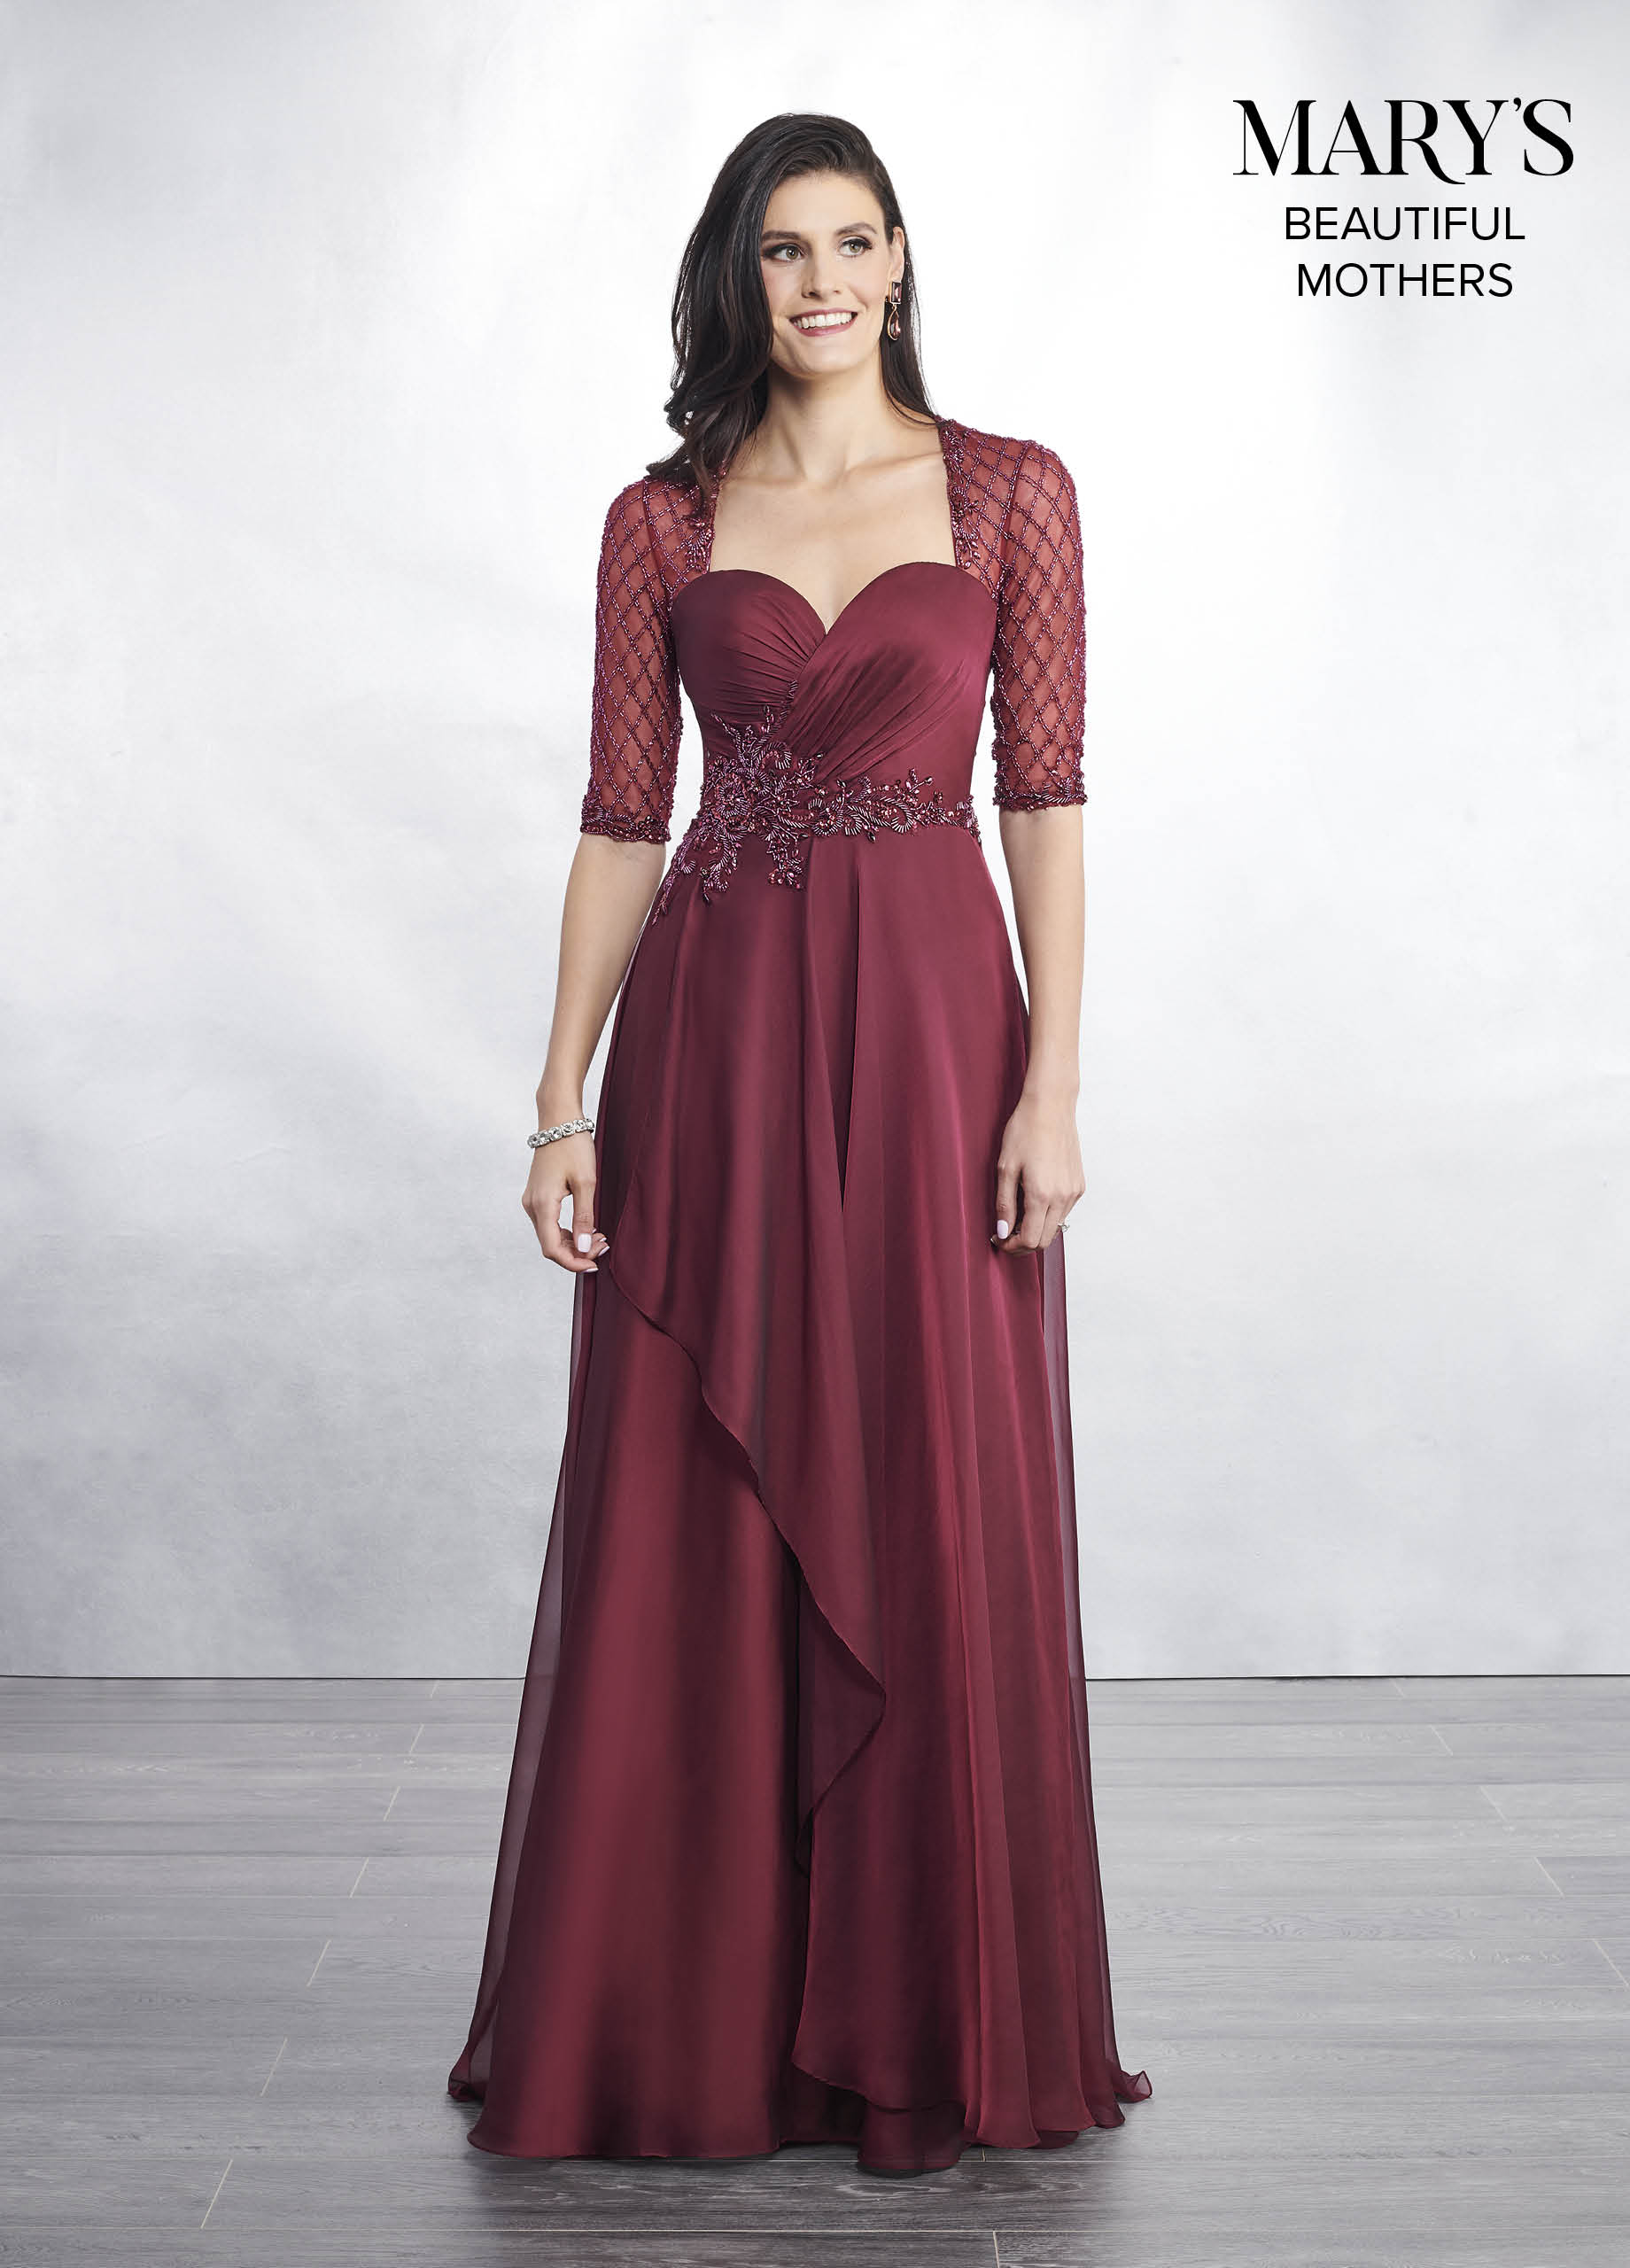 Mother Of The Bride Dresses | Beautiful Mothers | Style - MB8042